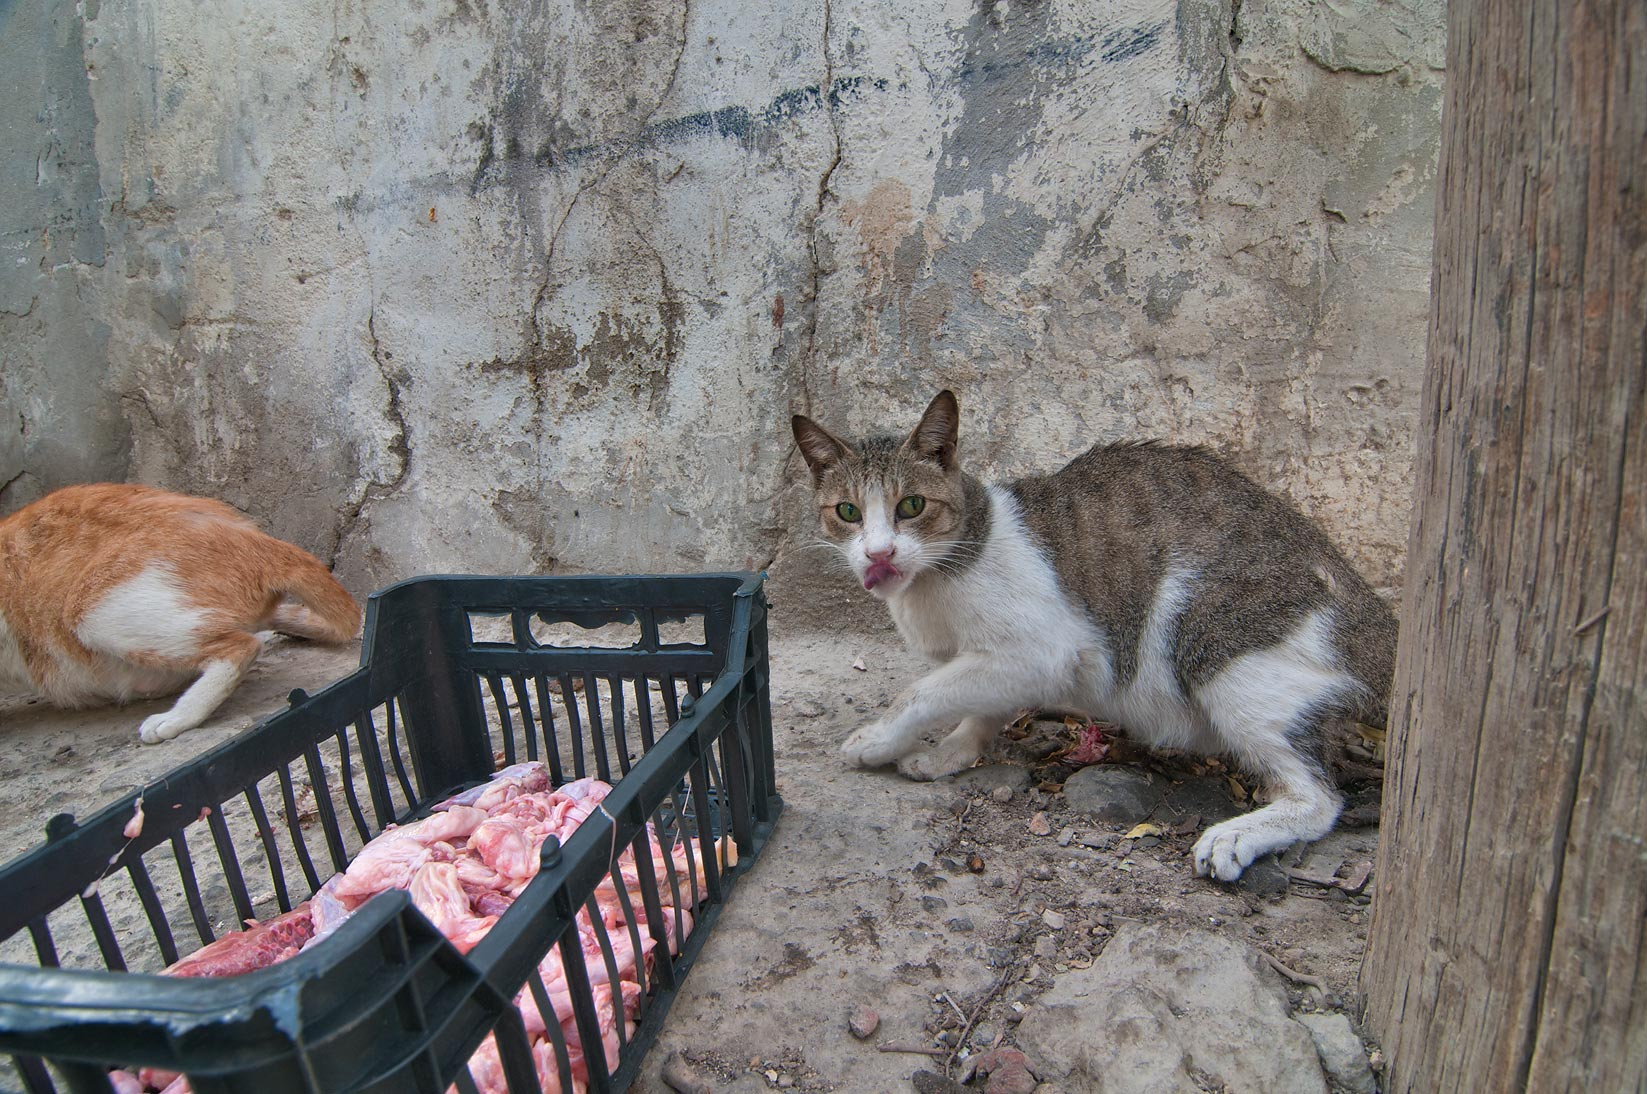 Cats eating raw meat from a box at a corner of...streets in Musheirib area. Doha, Qatar